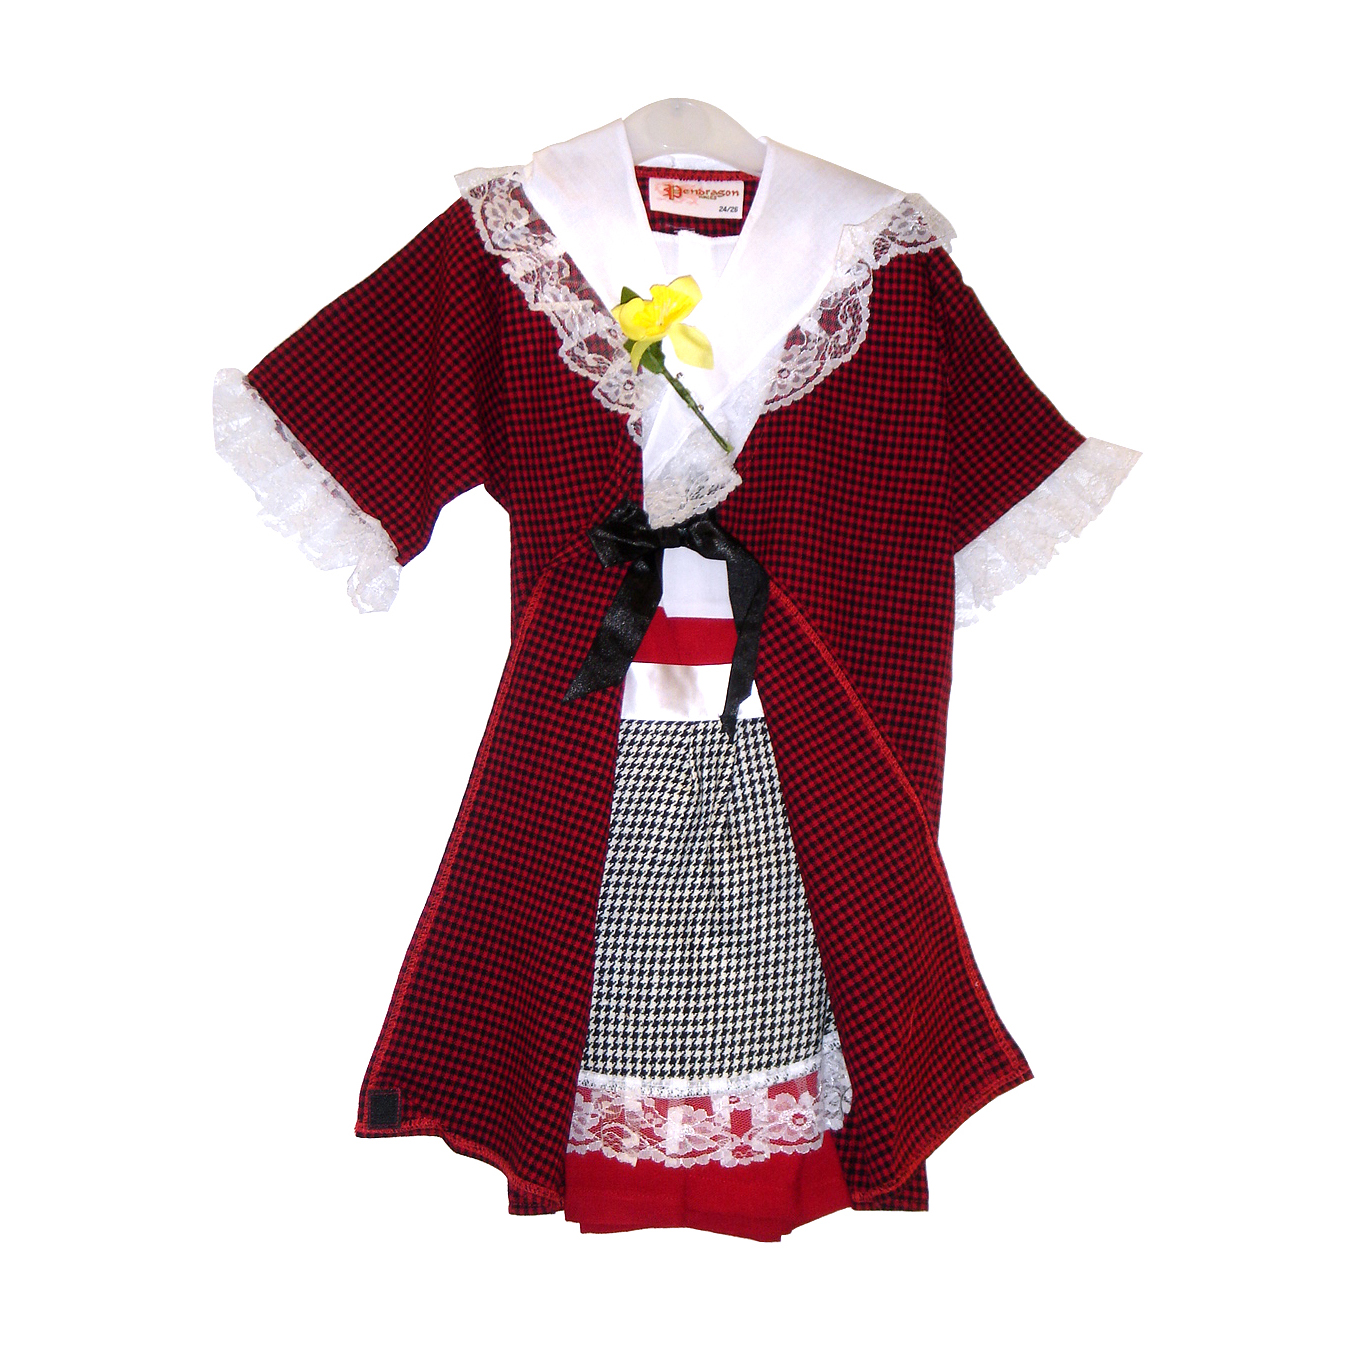 ST DAVIDS DAY WELSH COSTUME 5 TO 6